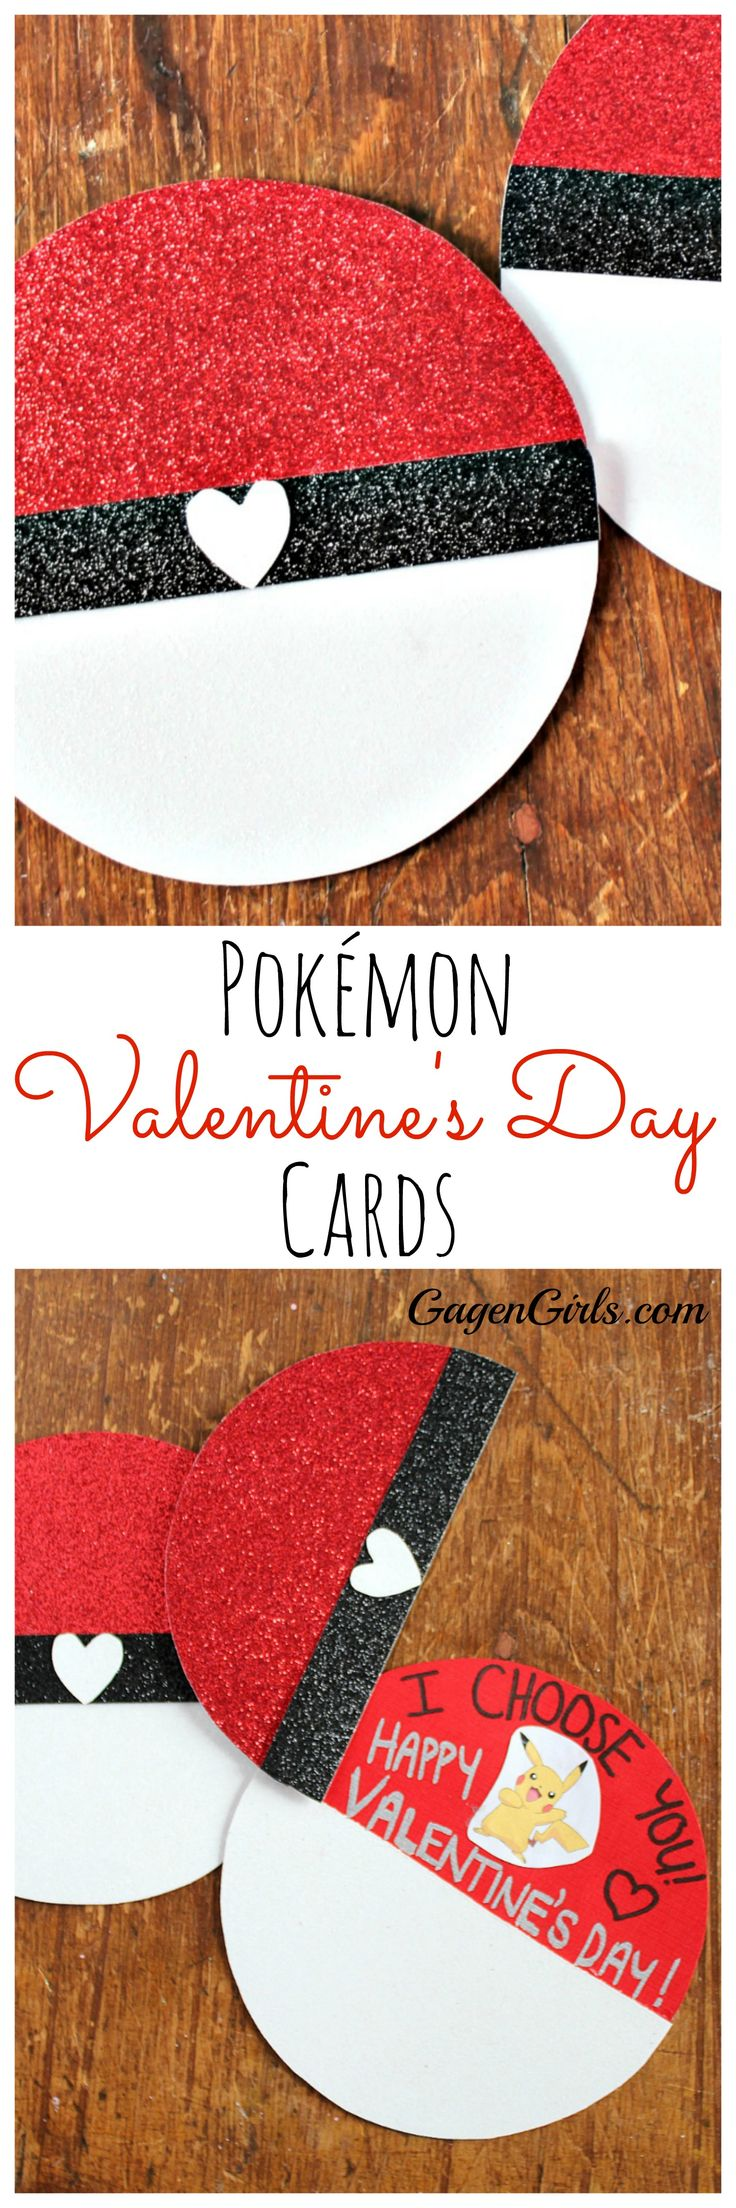 These adorable Pokémon Valentine's Day Cards are a snap to make! Only 15 minutes (plus some drying time) and you'll be wowing that special someone. Check out the tutorial.